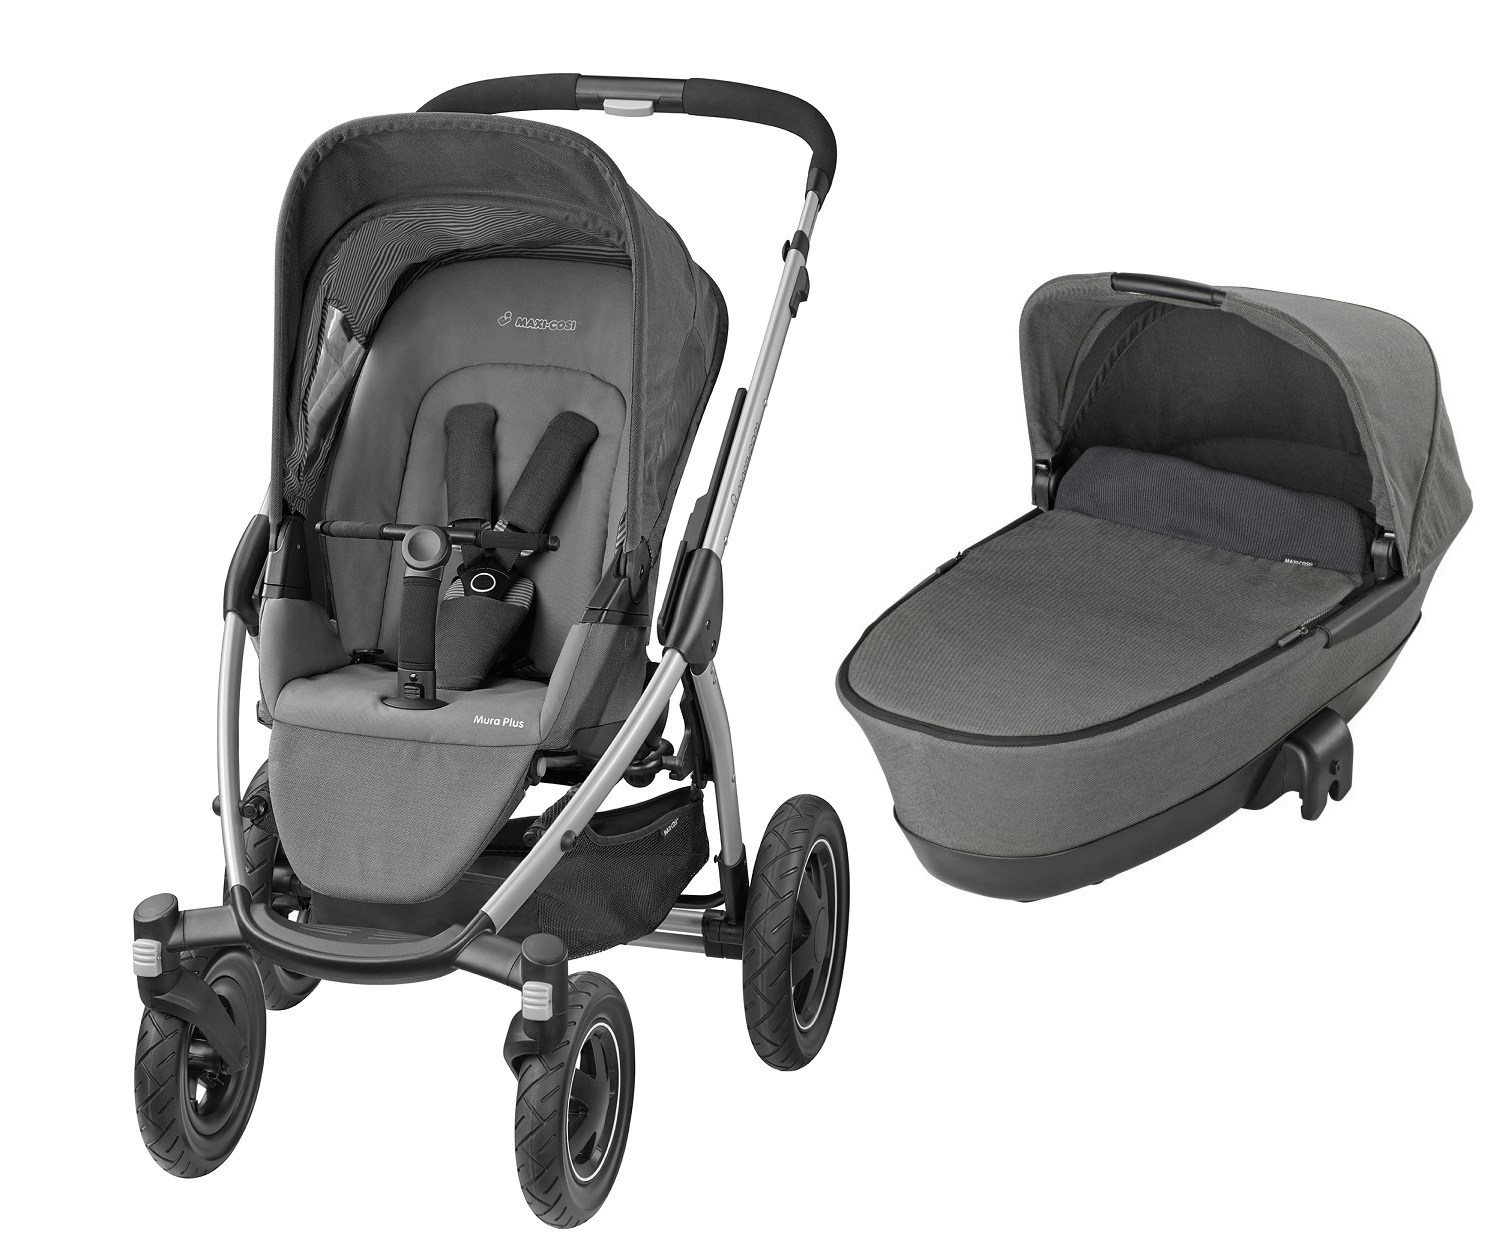 maxi cosi mura plus 4 incl dreamin carrycot attachment buy at kidsroom strollers. Black Bedroom Furniture Sets. Home Design Ideas